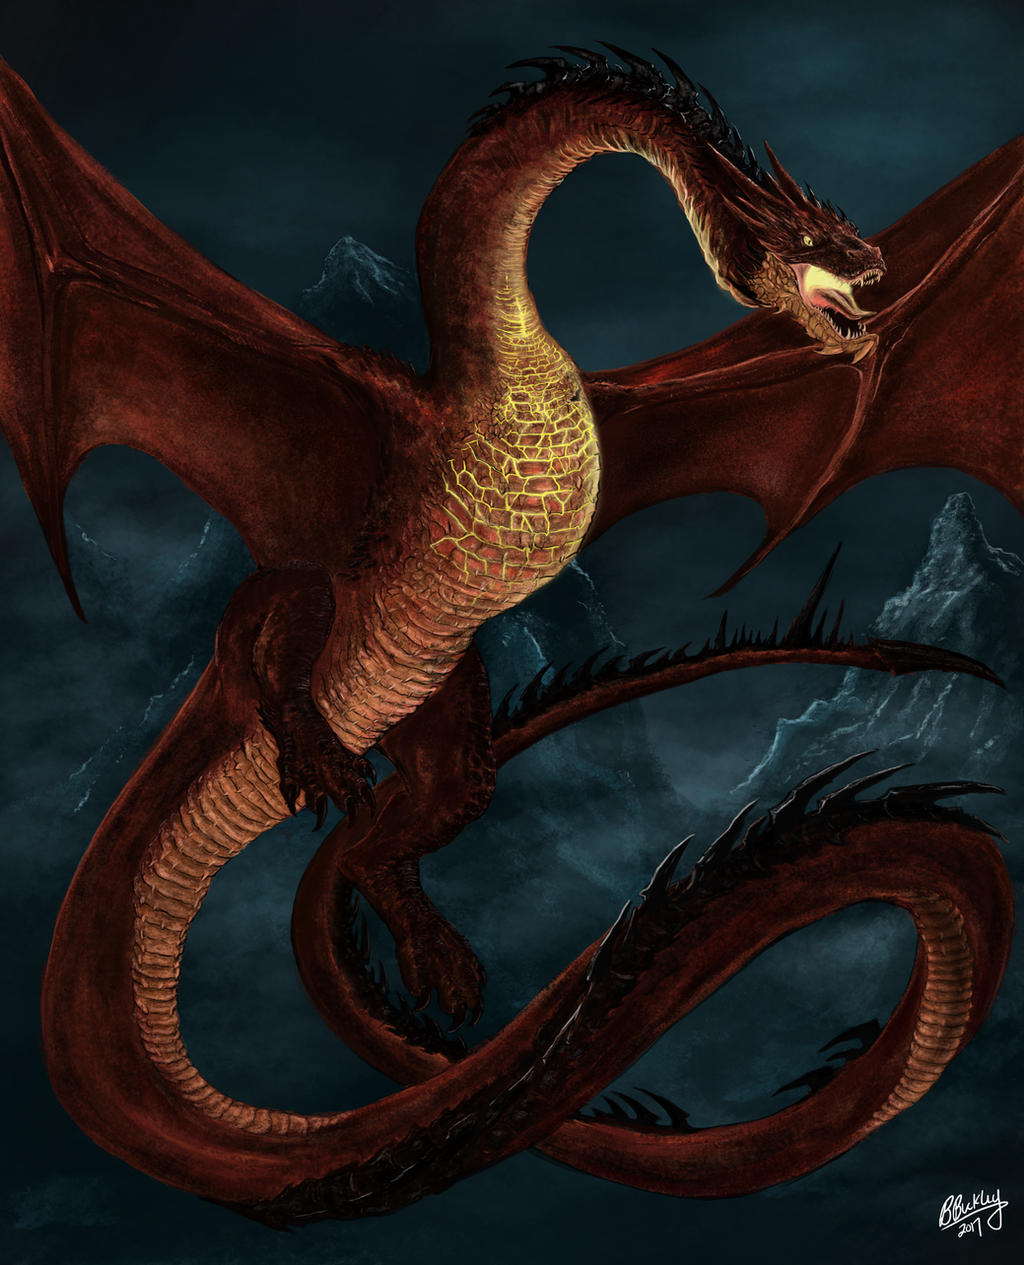 Smaug the Terrible by WretchedSpawn2012